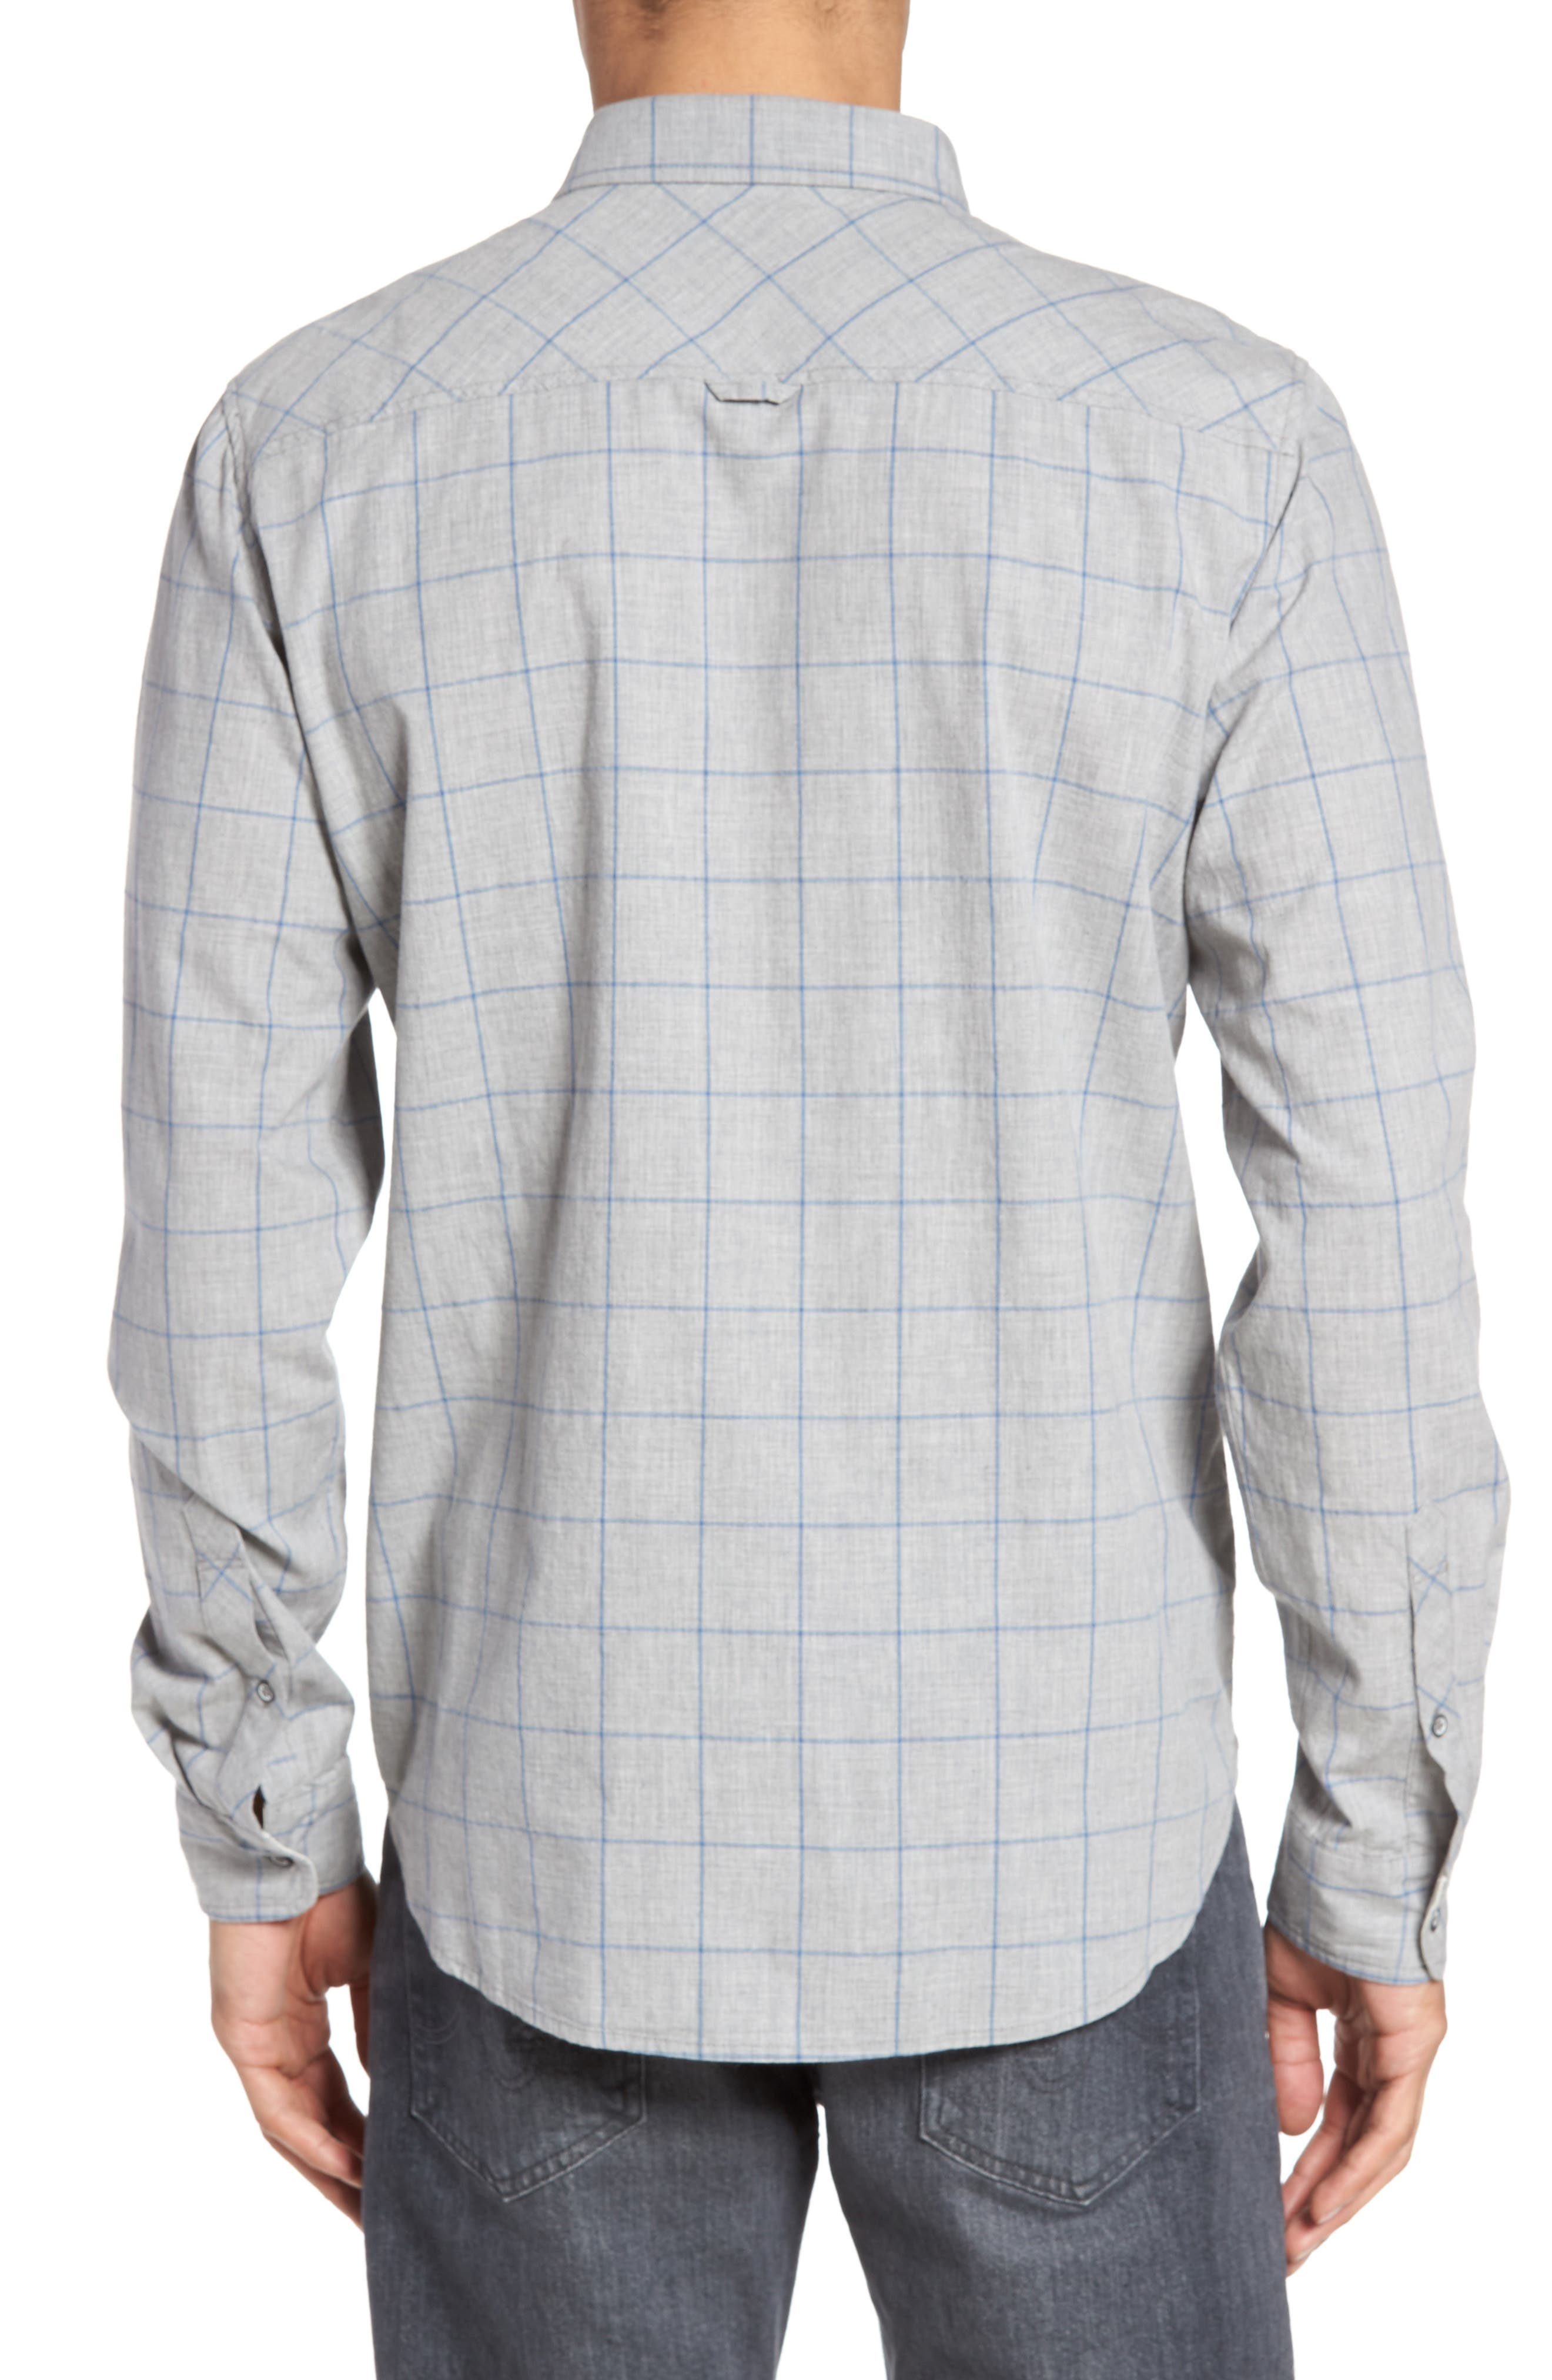 Grady Cotton Sport Shirt,                             Alternate thumbnail 2, color,                             Heather Grey/ Sailor Blue